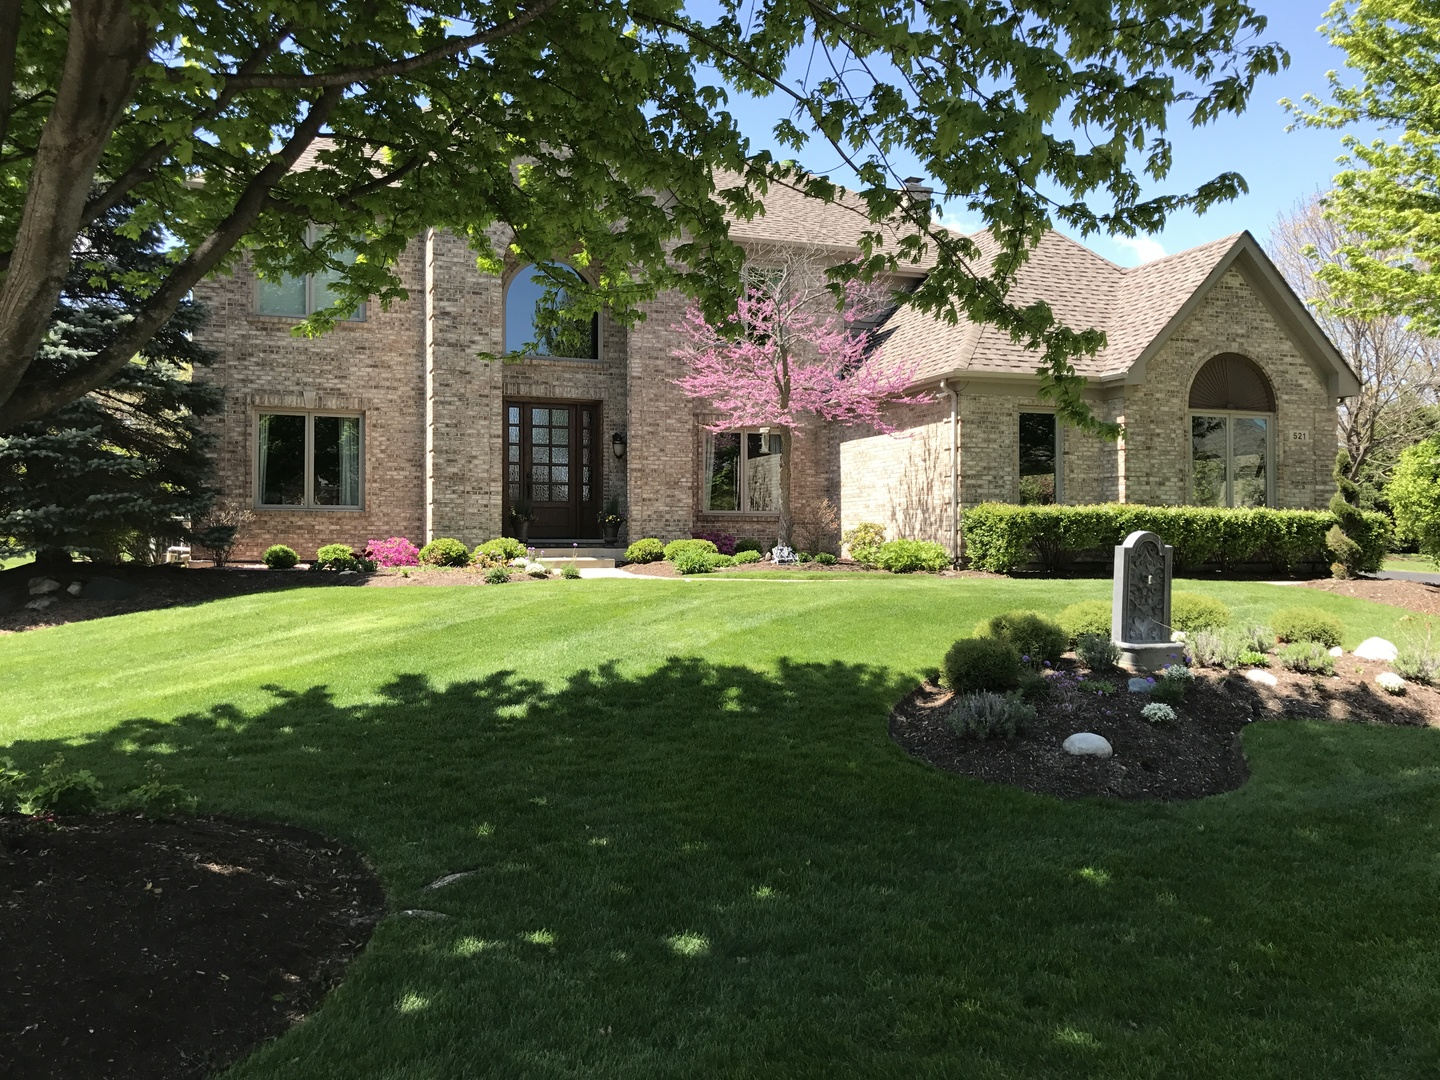 Property for sale at 521 Mason Lane, Lake In The Hills,  IL 60156